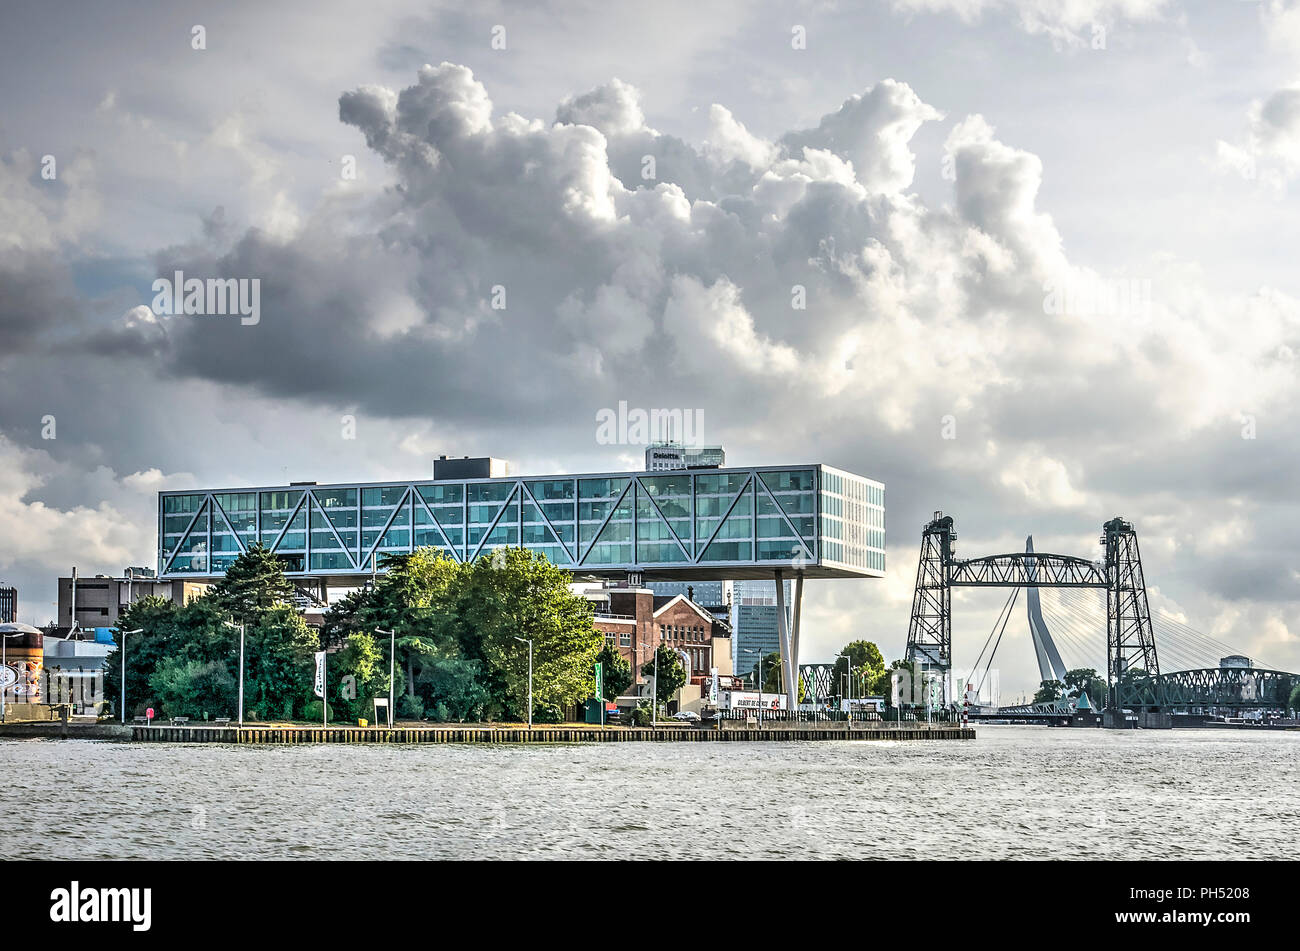 Rotterdam, The Netherlands, August 13, 2018: the striking horizontal beam of the Unilever office and monumental railway bridge De Hef, as seen from th - Stock Image